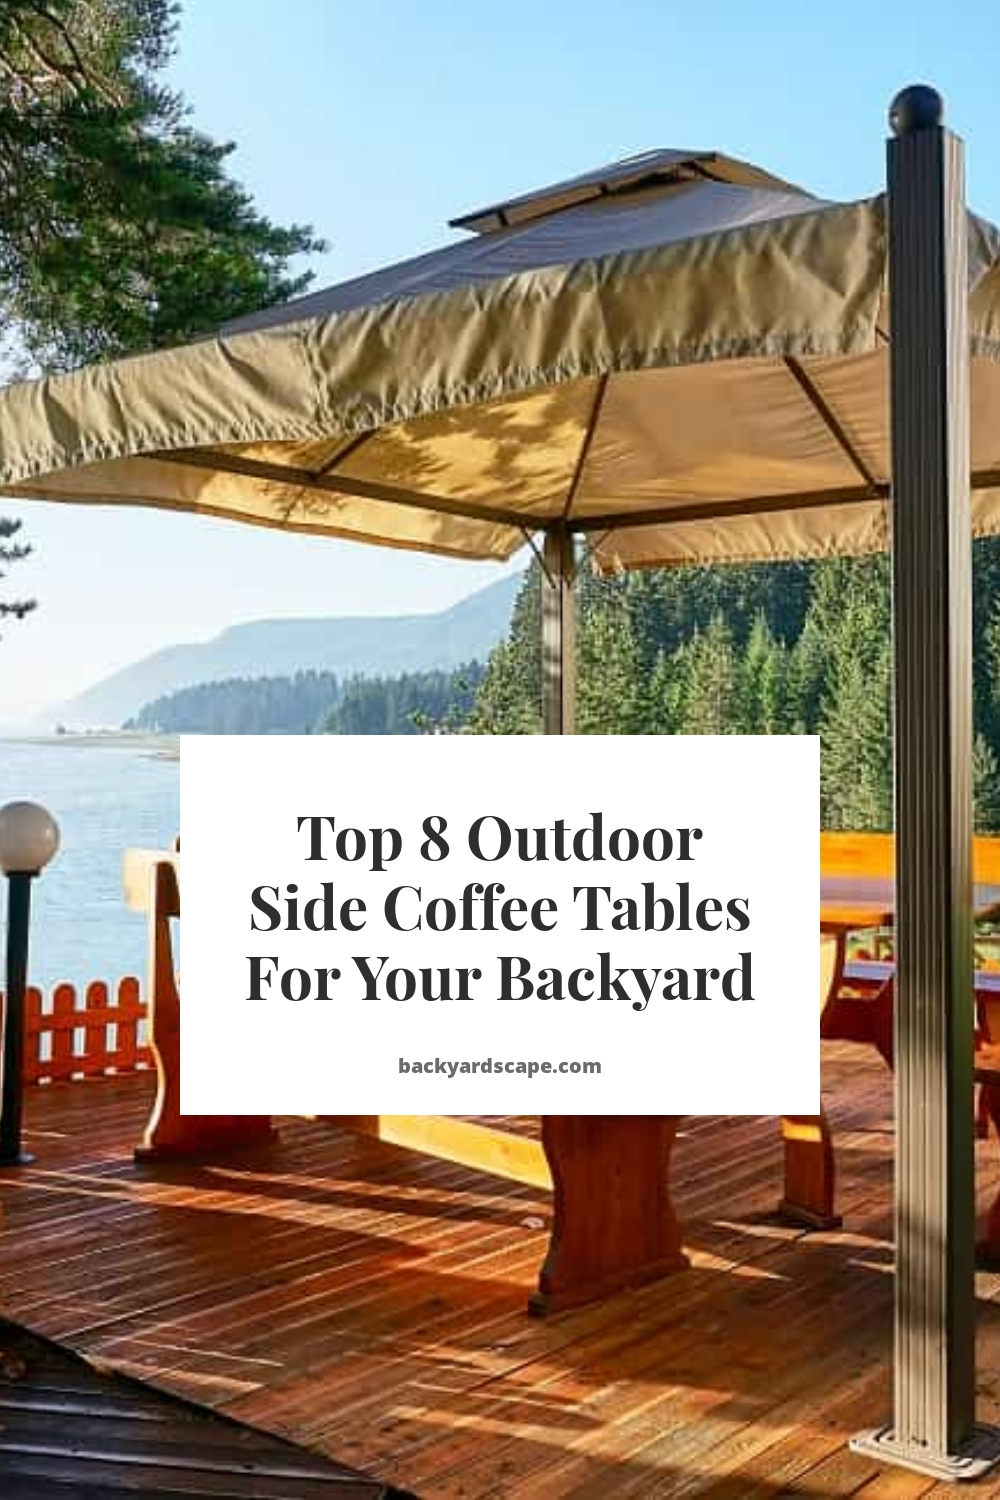 Top 8 Outdoor Side Coffee Tables For Your Backyard